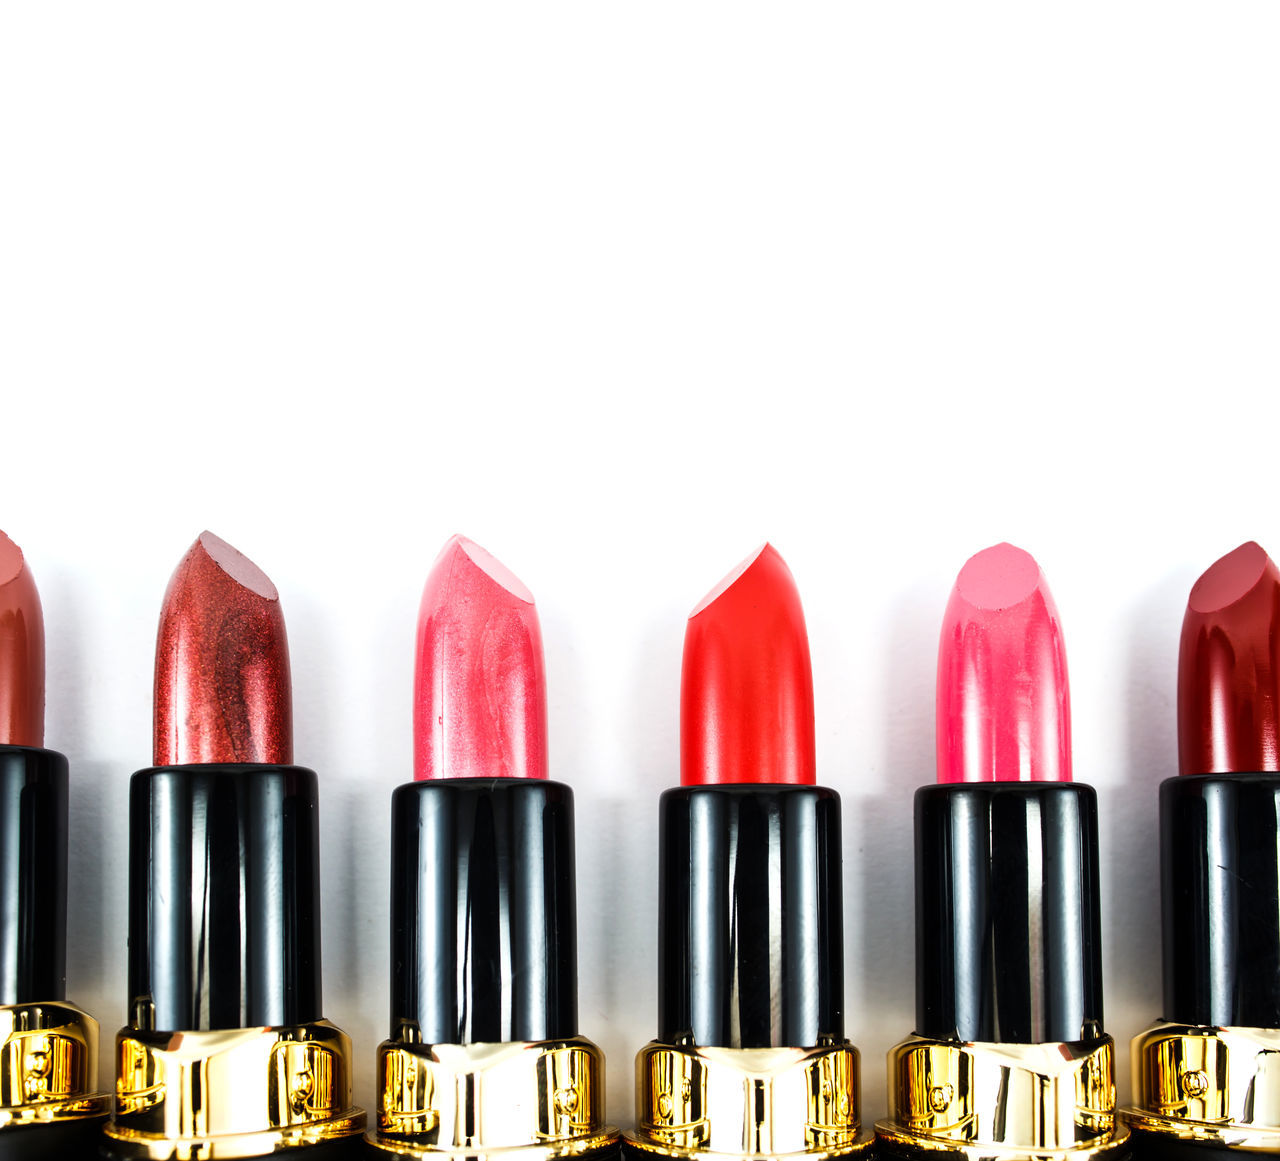 Lipstick colors isolated on a white background to form a page border Background Beauty Black Border Care Colors Coral Cosmetics Edge Flat Golden Lay Lippy Lips Lipstick Make Makeup Page Pink Product Purple Red Set Stick Up